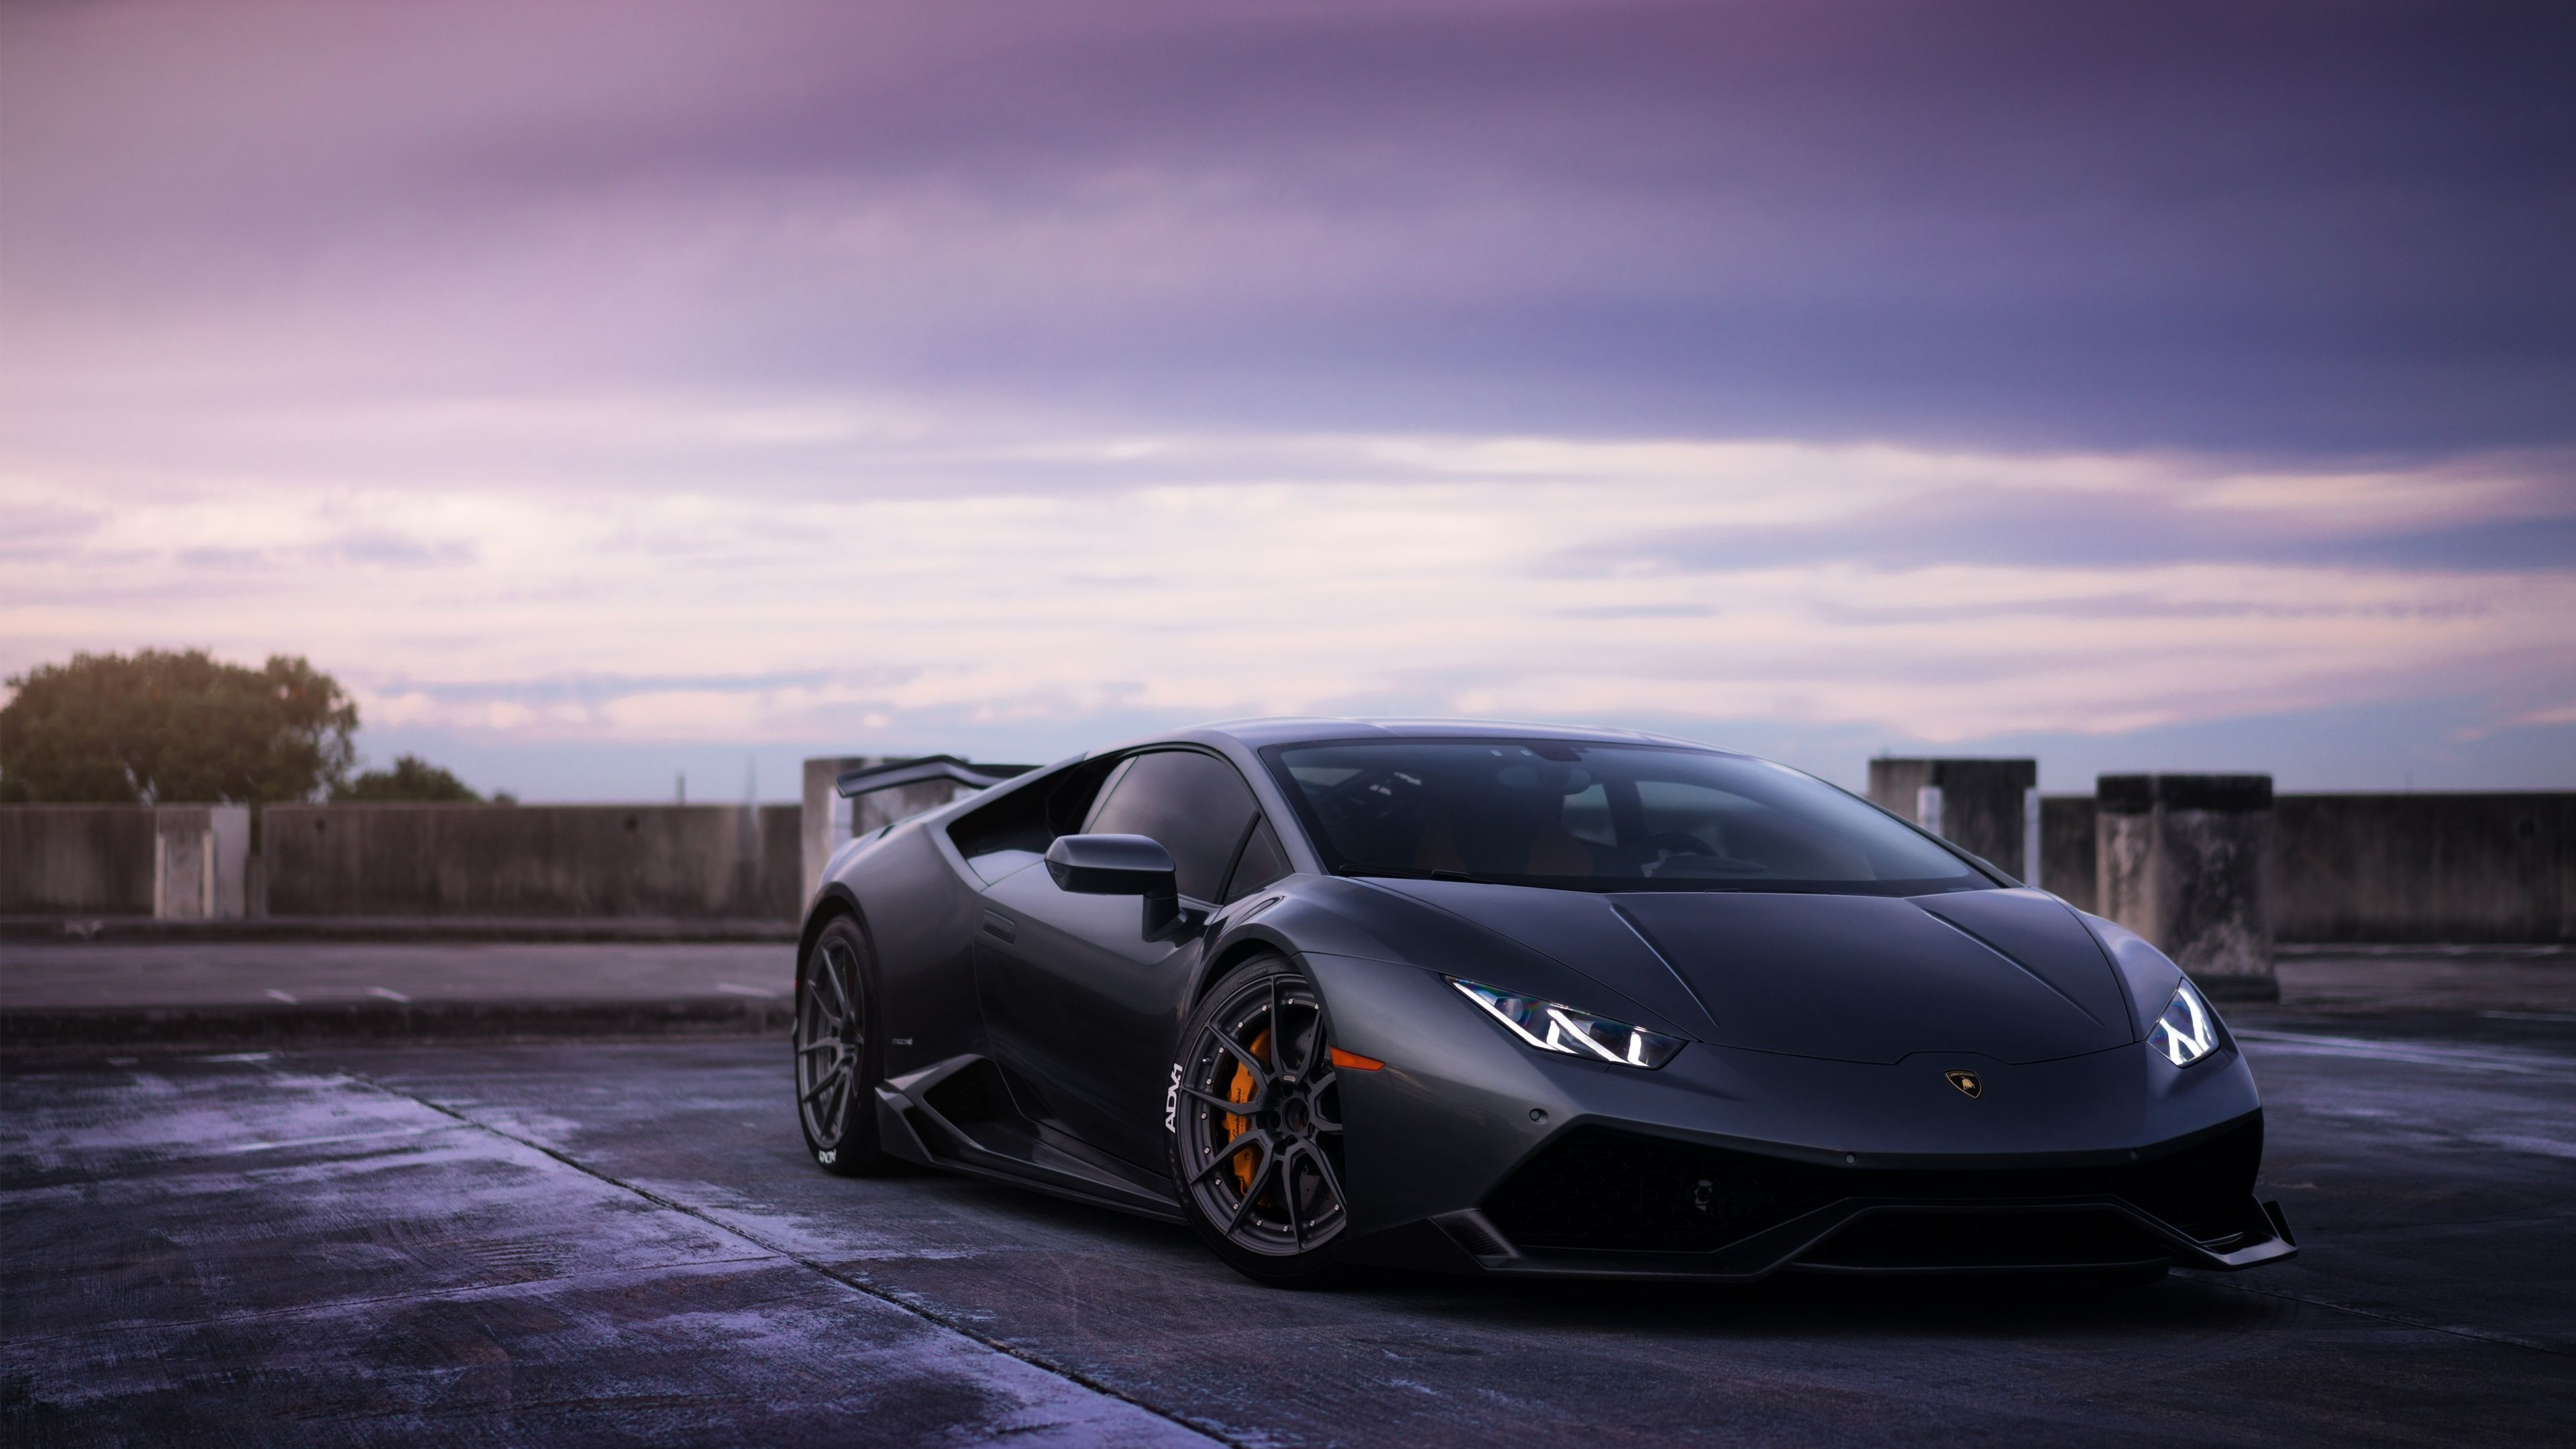 4K Lamborghini Wallpaper